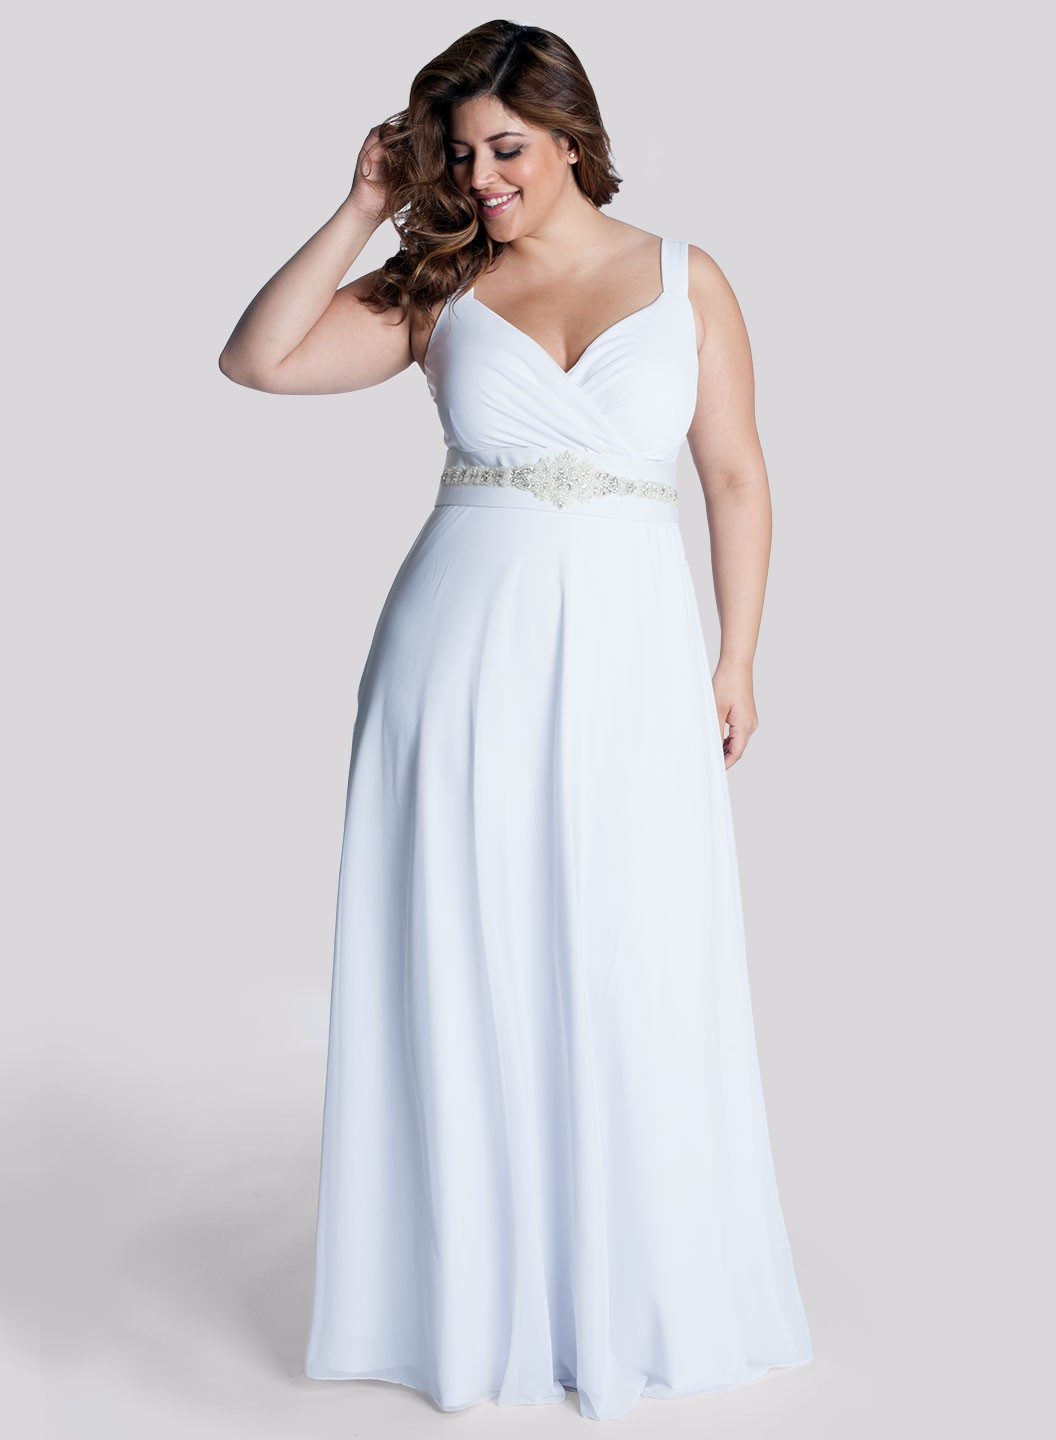 Plus Size Casual Beach Dresses, Casual Beach Wedding Guest Dresses, Plus Size Beach Wedding Attire, Wedding Dresses for Plus Size Women, Plus Size Bridesmaid Dress, Cheap Wedding Dresses Plus Size, Dresses for a Beach Wedding, Plus Size Formal Dresses for Weddings